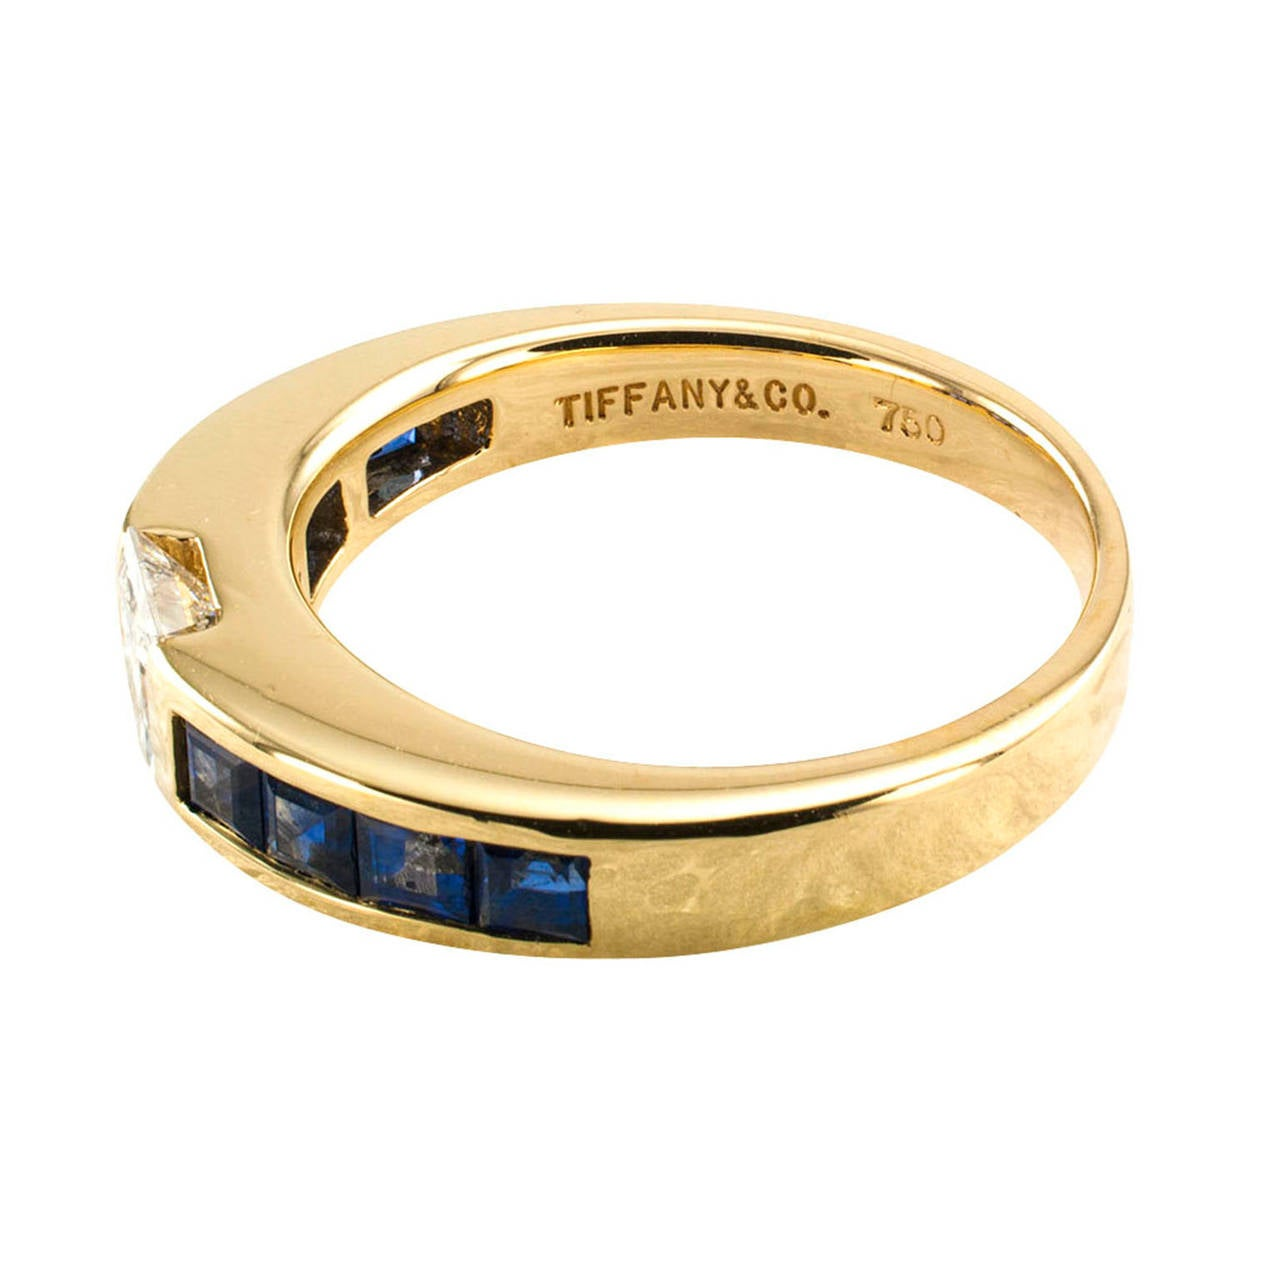 Tiffany Princess Cut Diamond And Sapphire Ring Band At 1stdibs